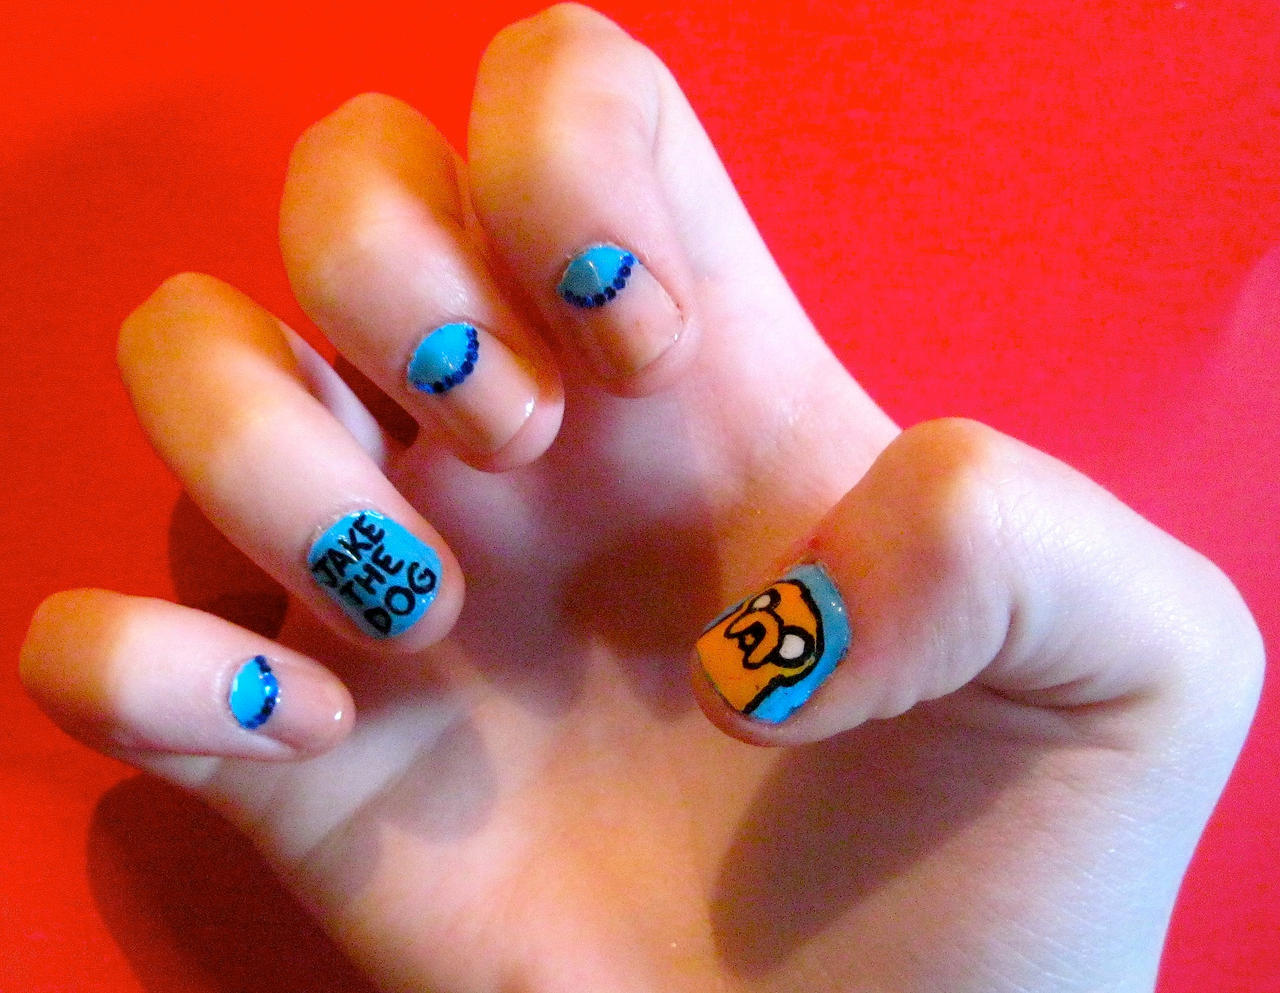 Adventure time nail art jake by hannahxbanana94 on deviantart adventure time nail art jake by hannahxbanana94 prinsesfo Images